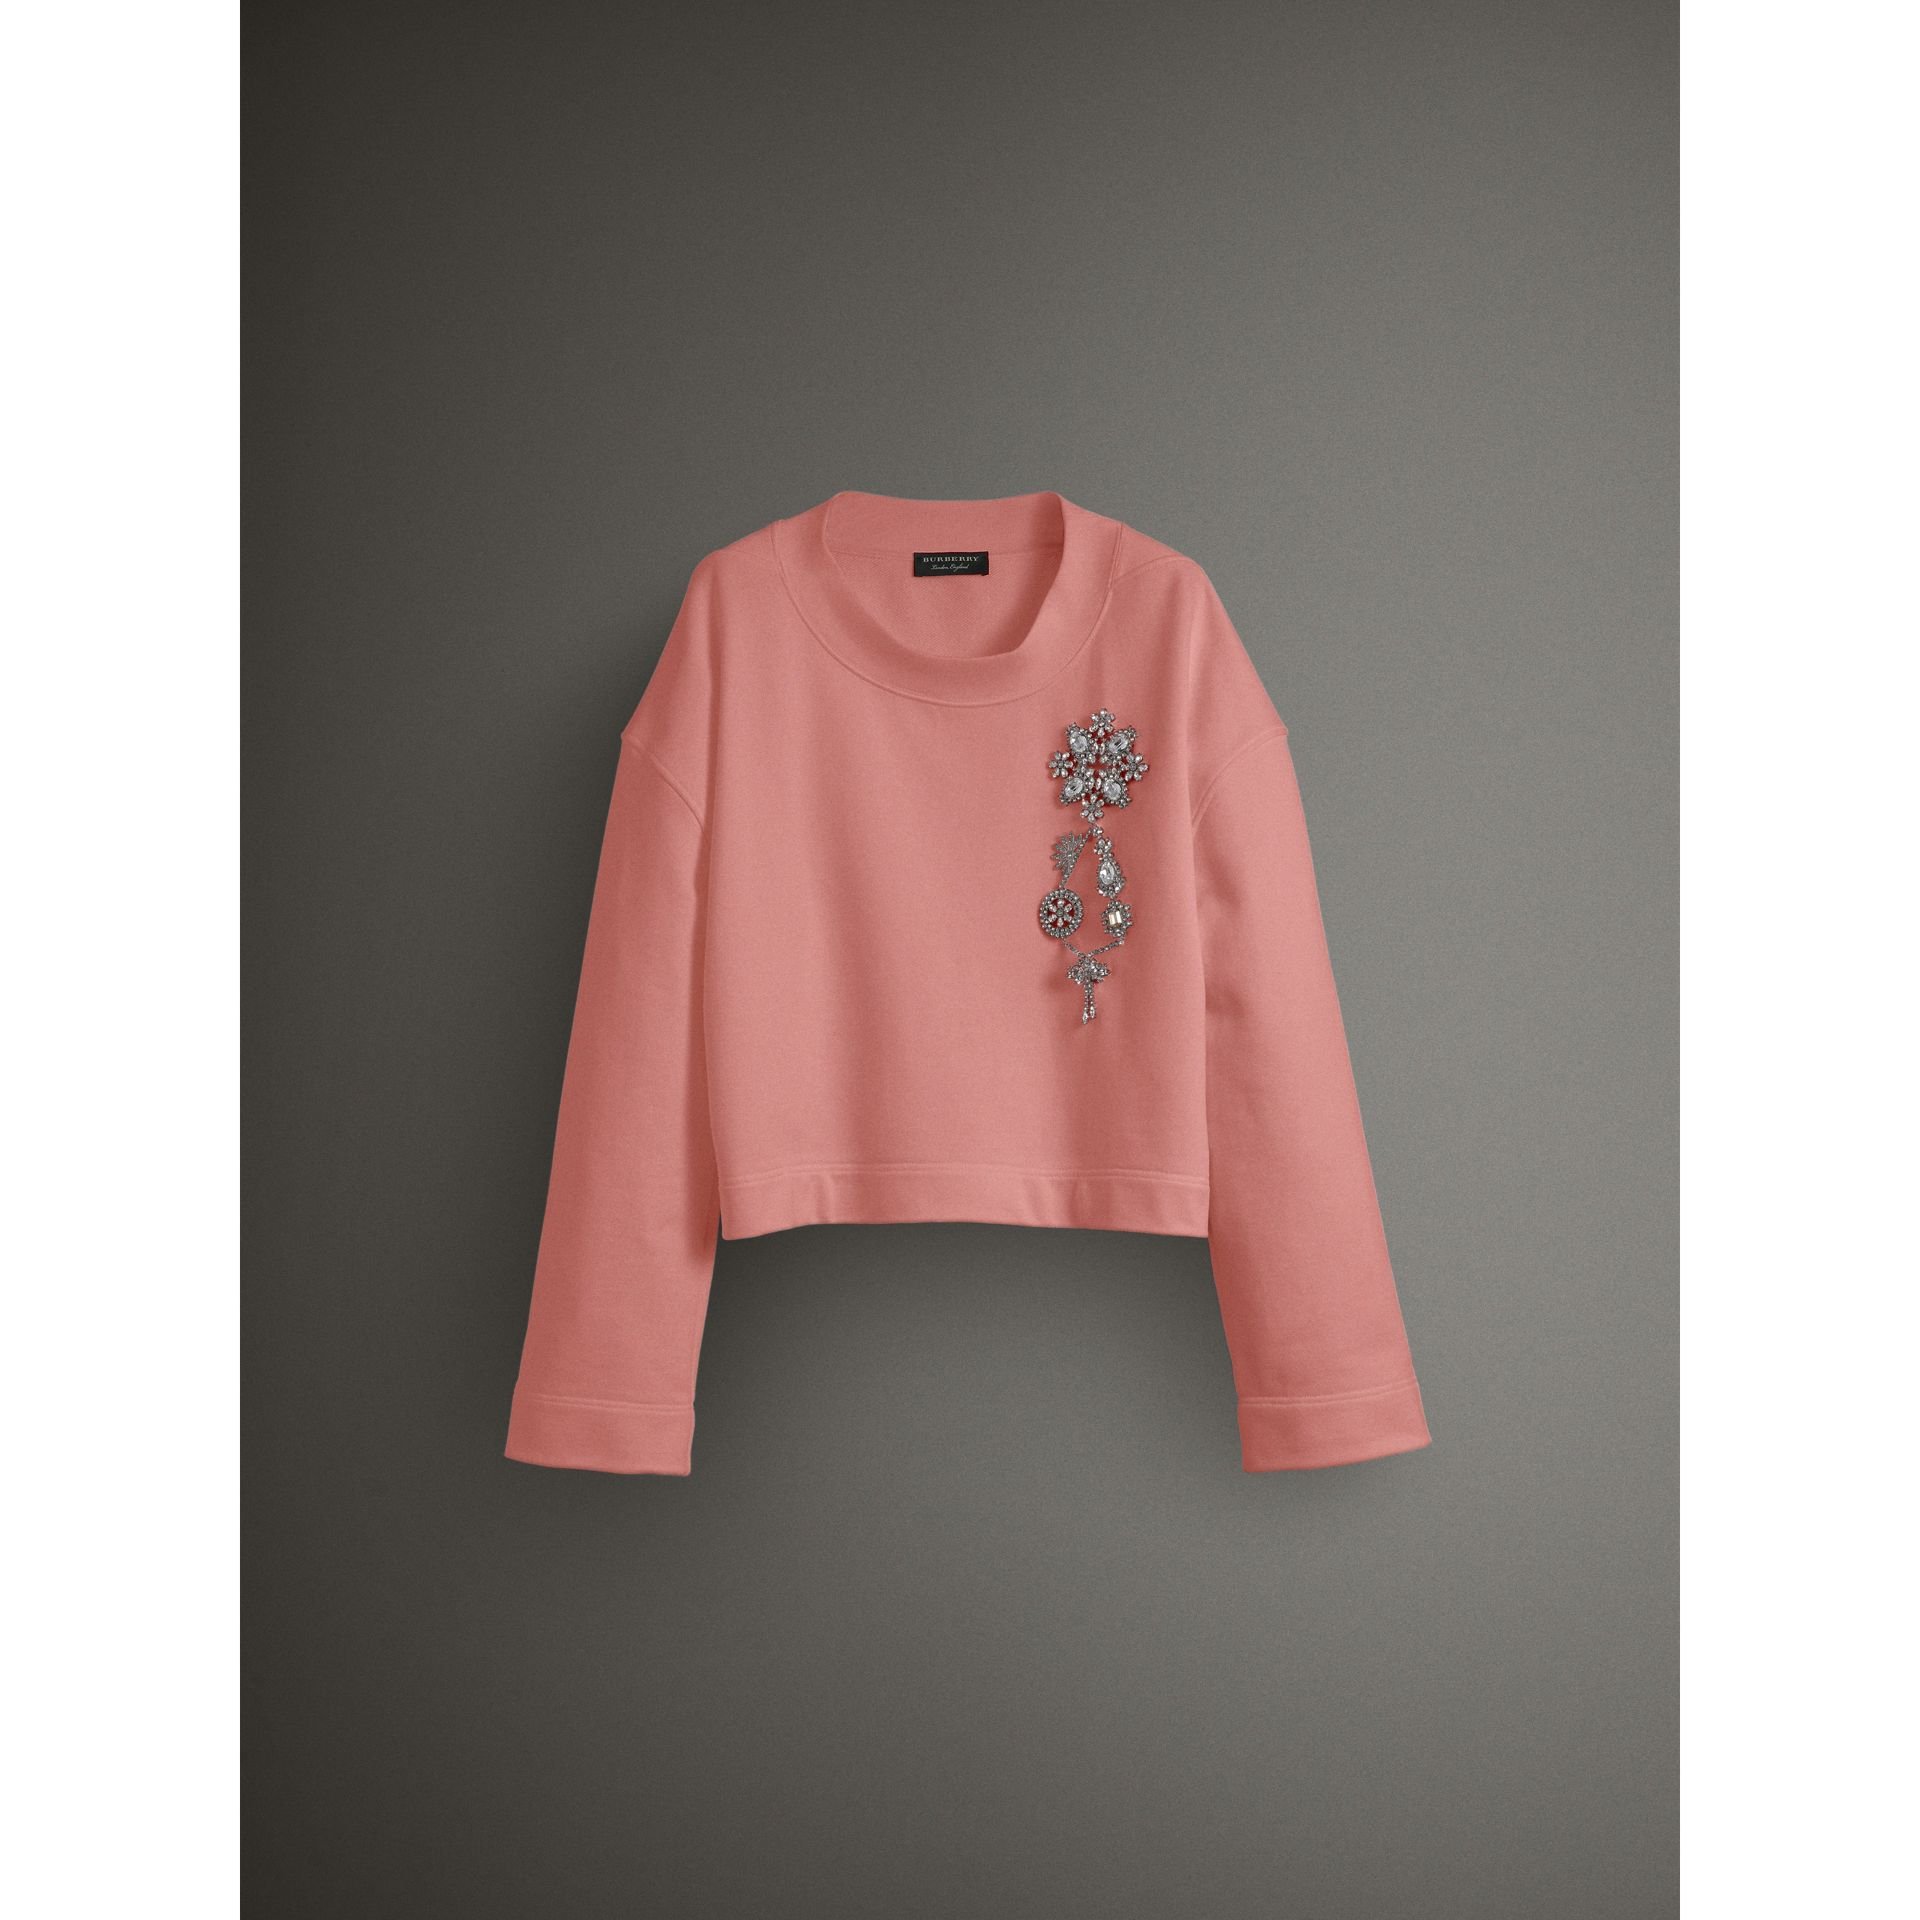 Cropped Sweatshirt with Crystal Brooch in Vintage Rose - Women | Burberry - gallery image 3